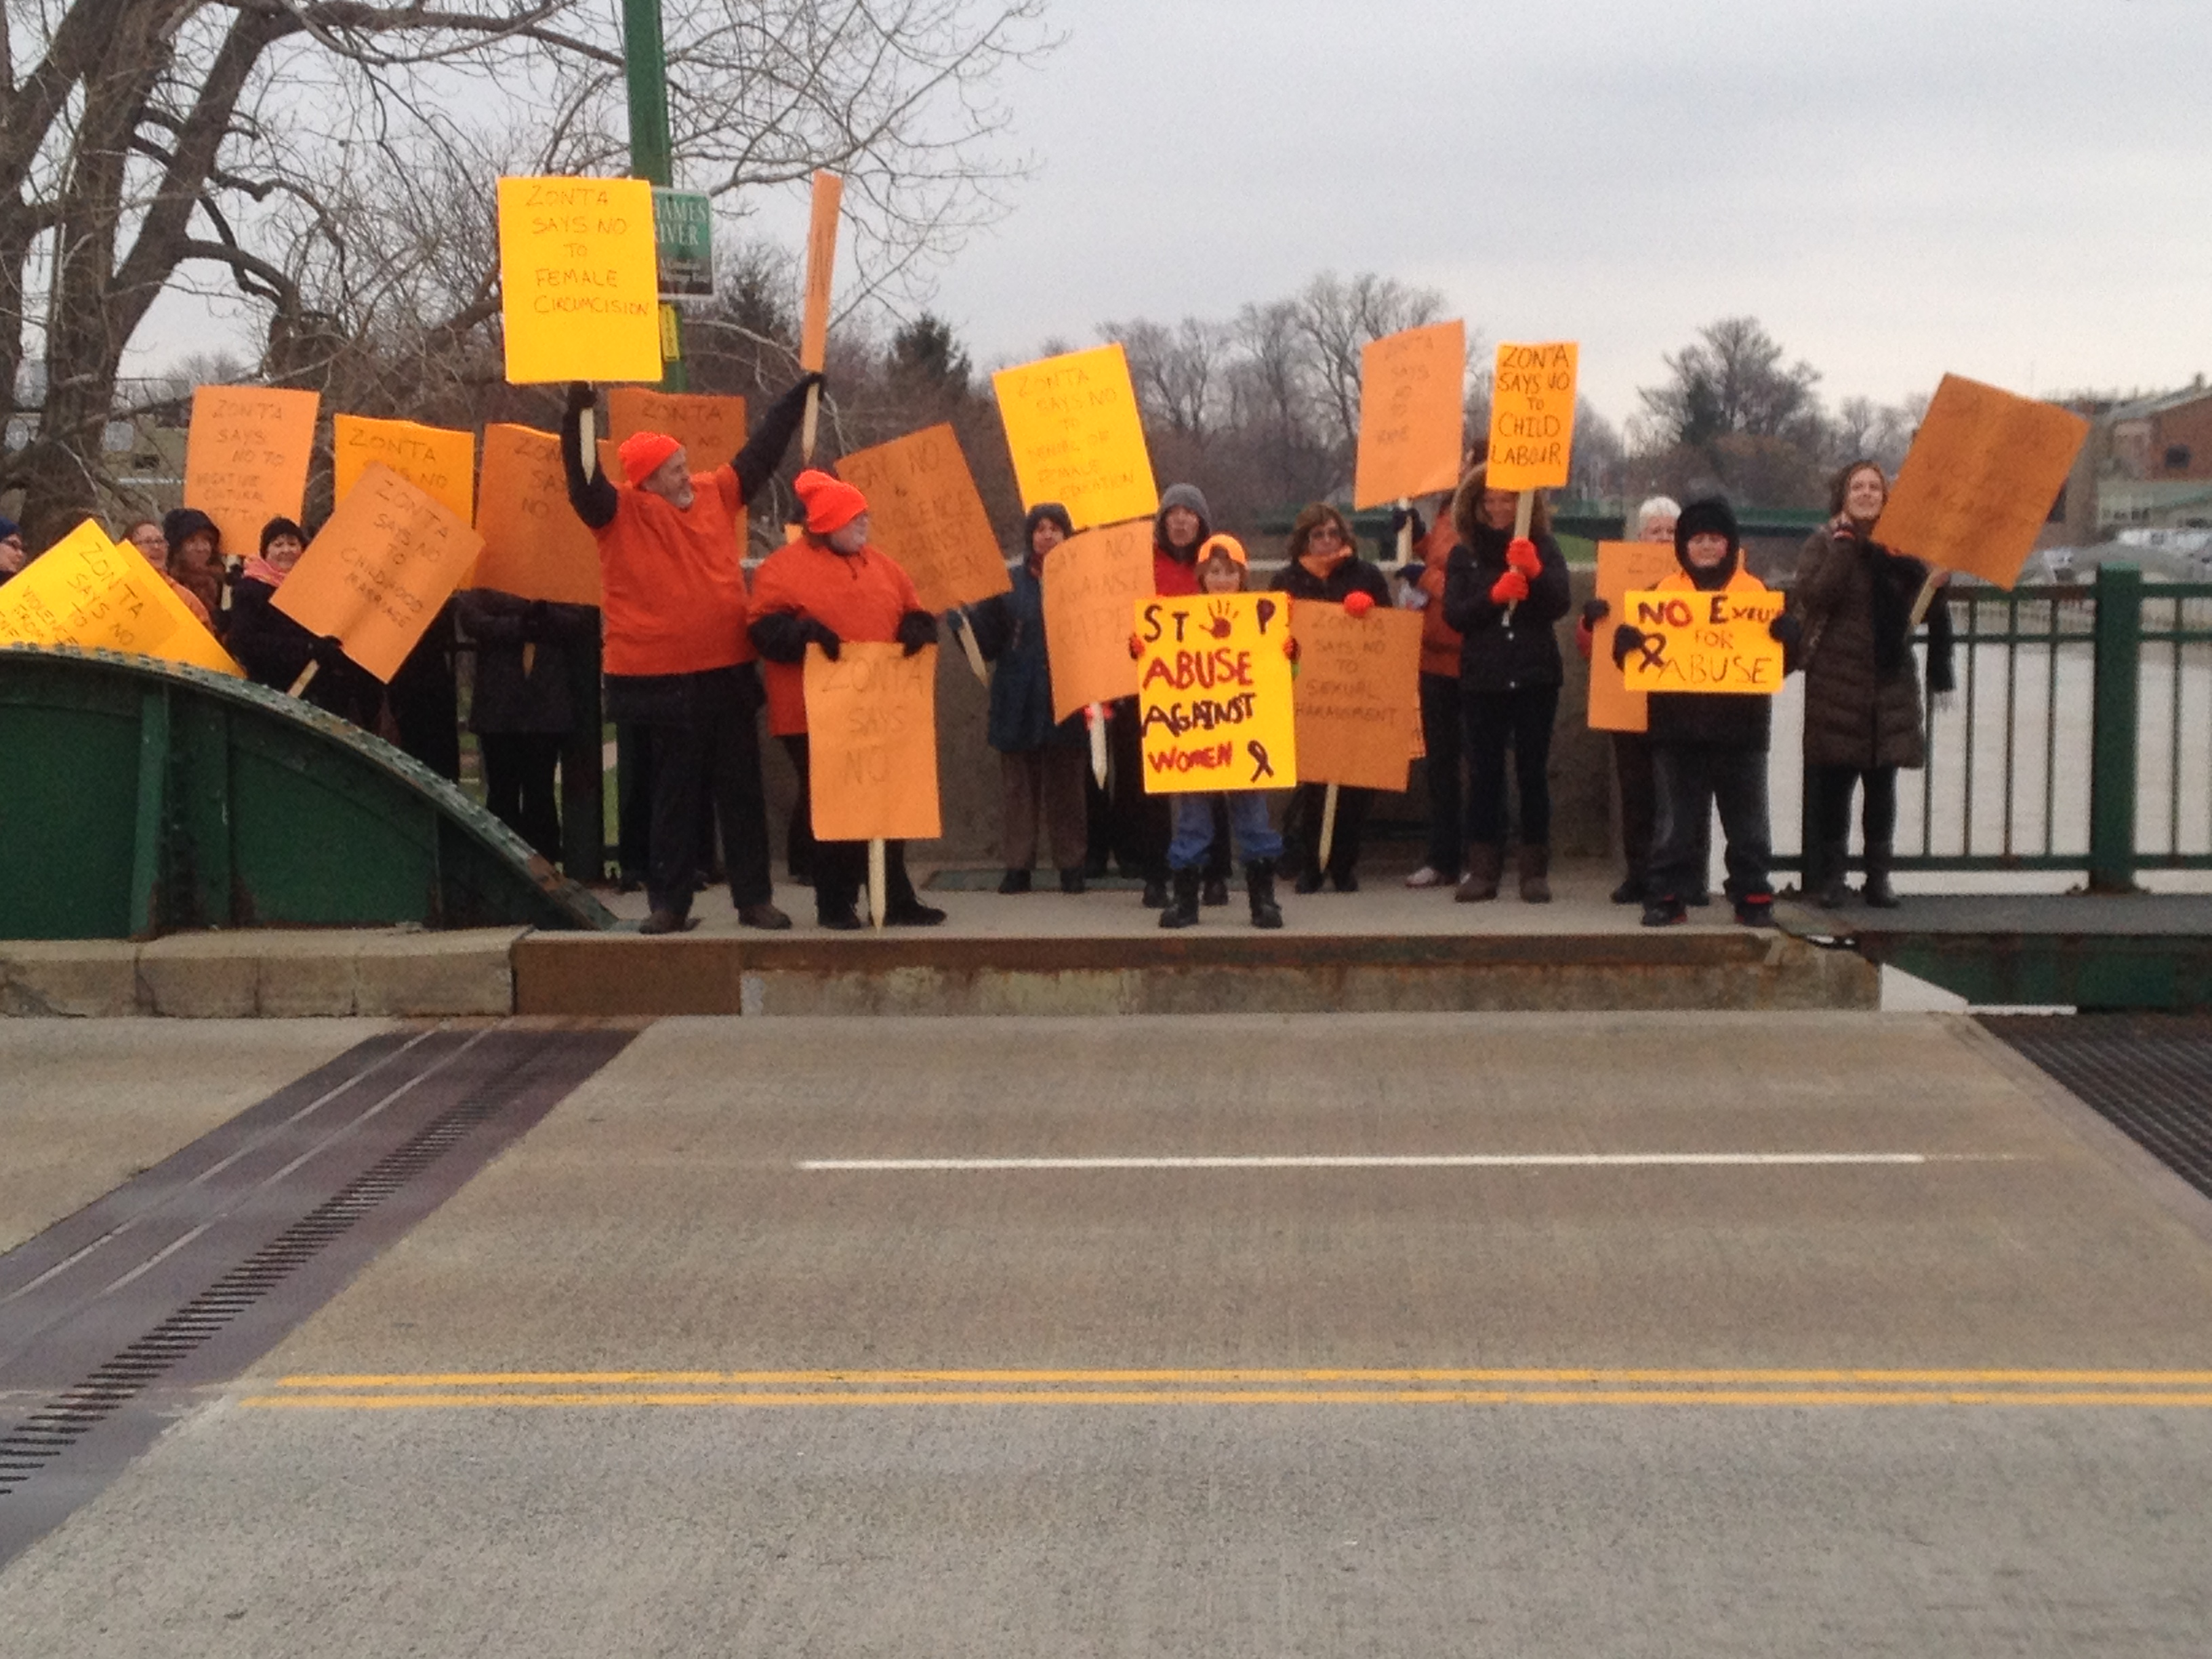 Chatham-Kent residents gather on the 3rd St. Bridge in Chatham to protest violence against women. November 25, 2014. (Photo courtesy of Jenny Pelisek)